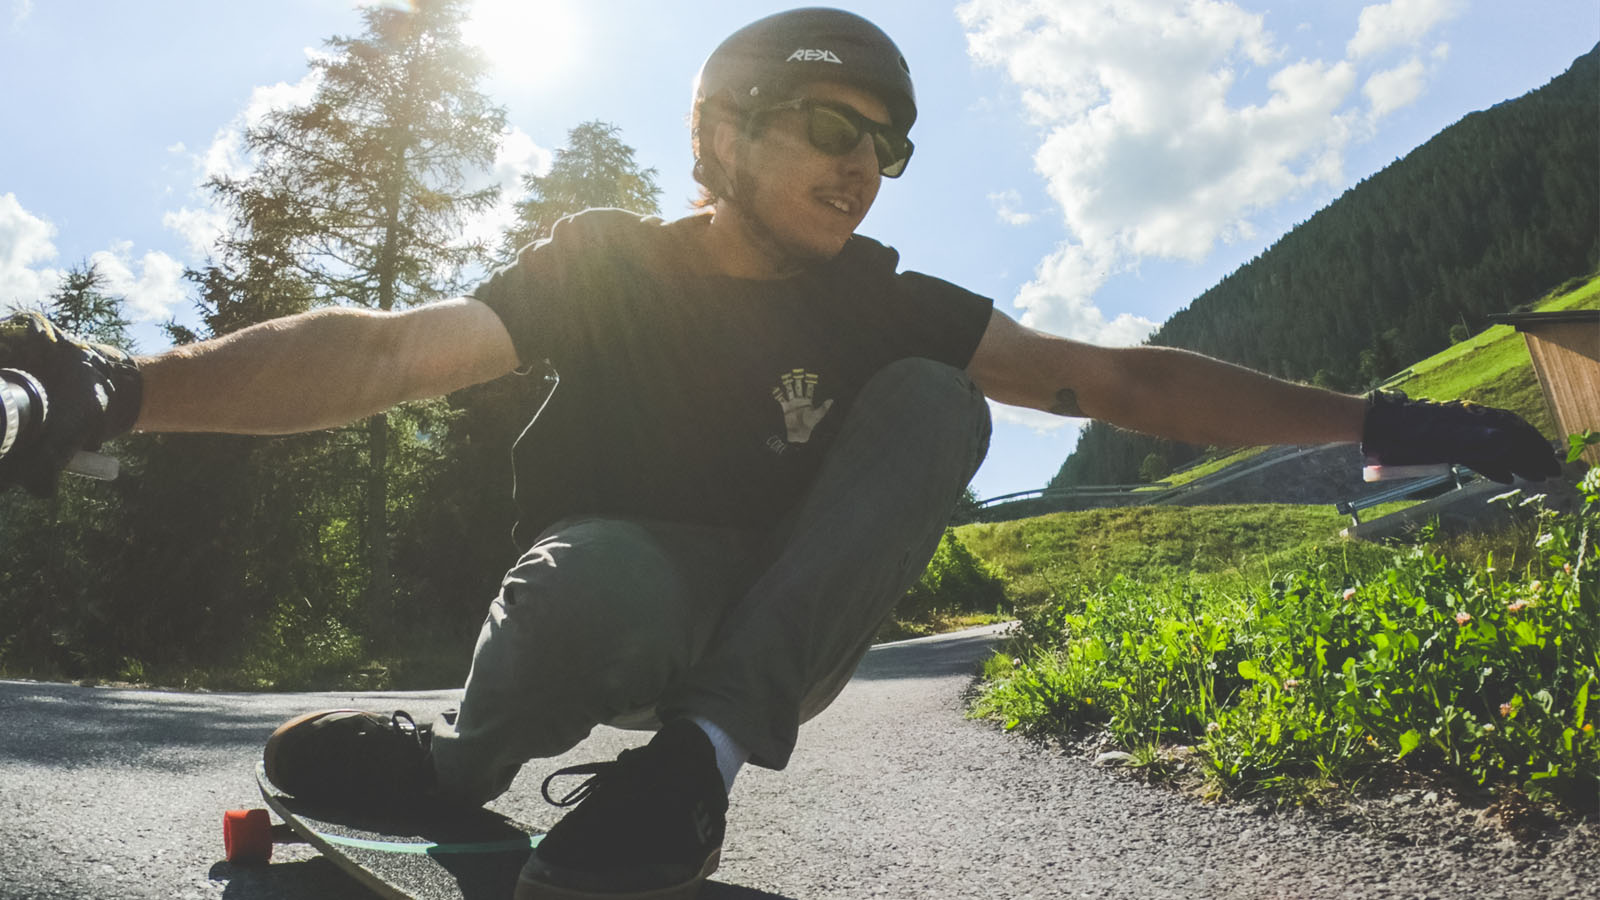 REKD Protection SS21 Skate Helmets & Protection Preview